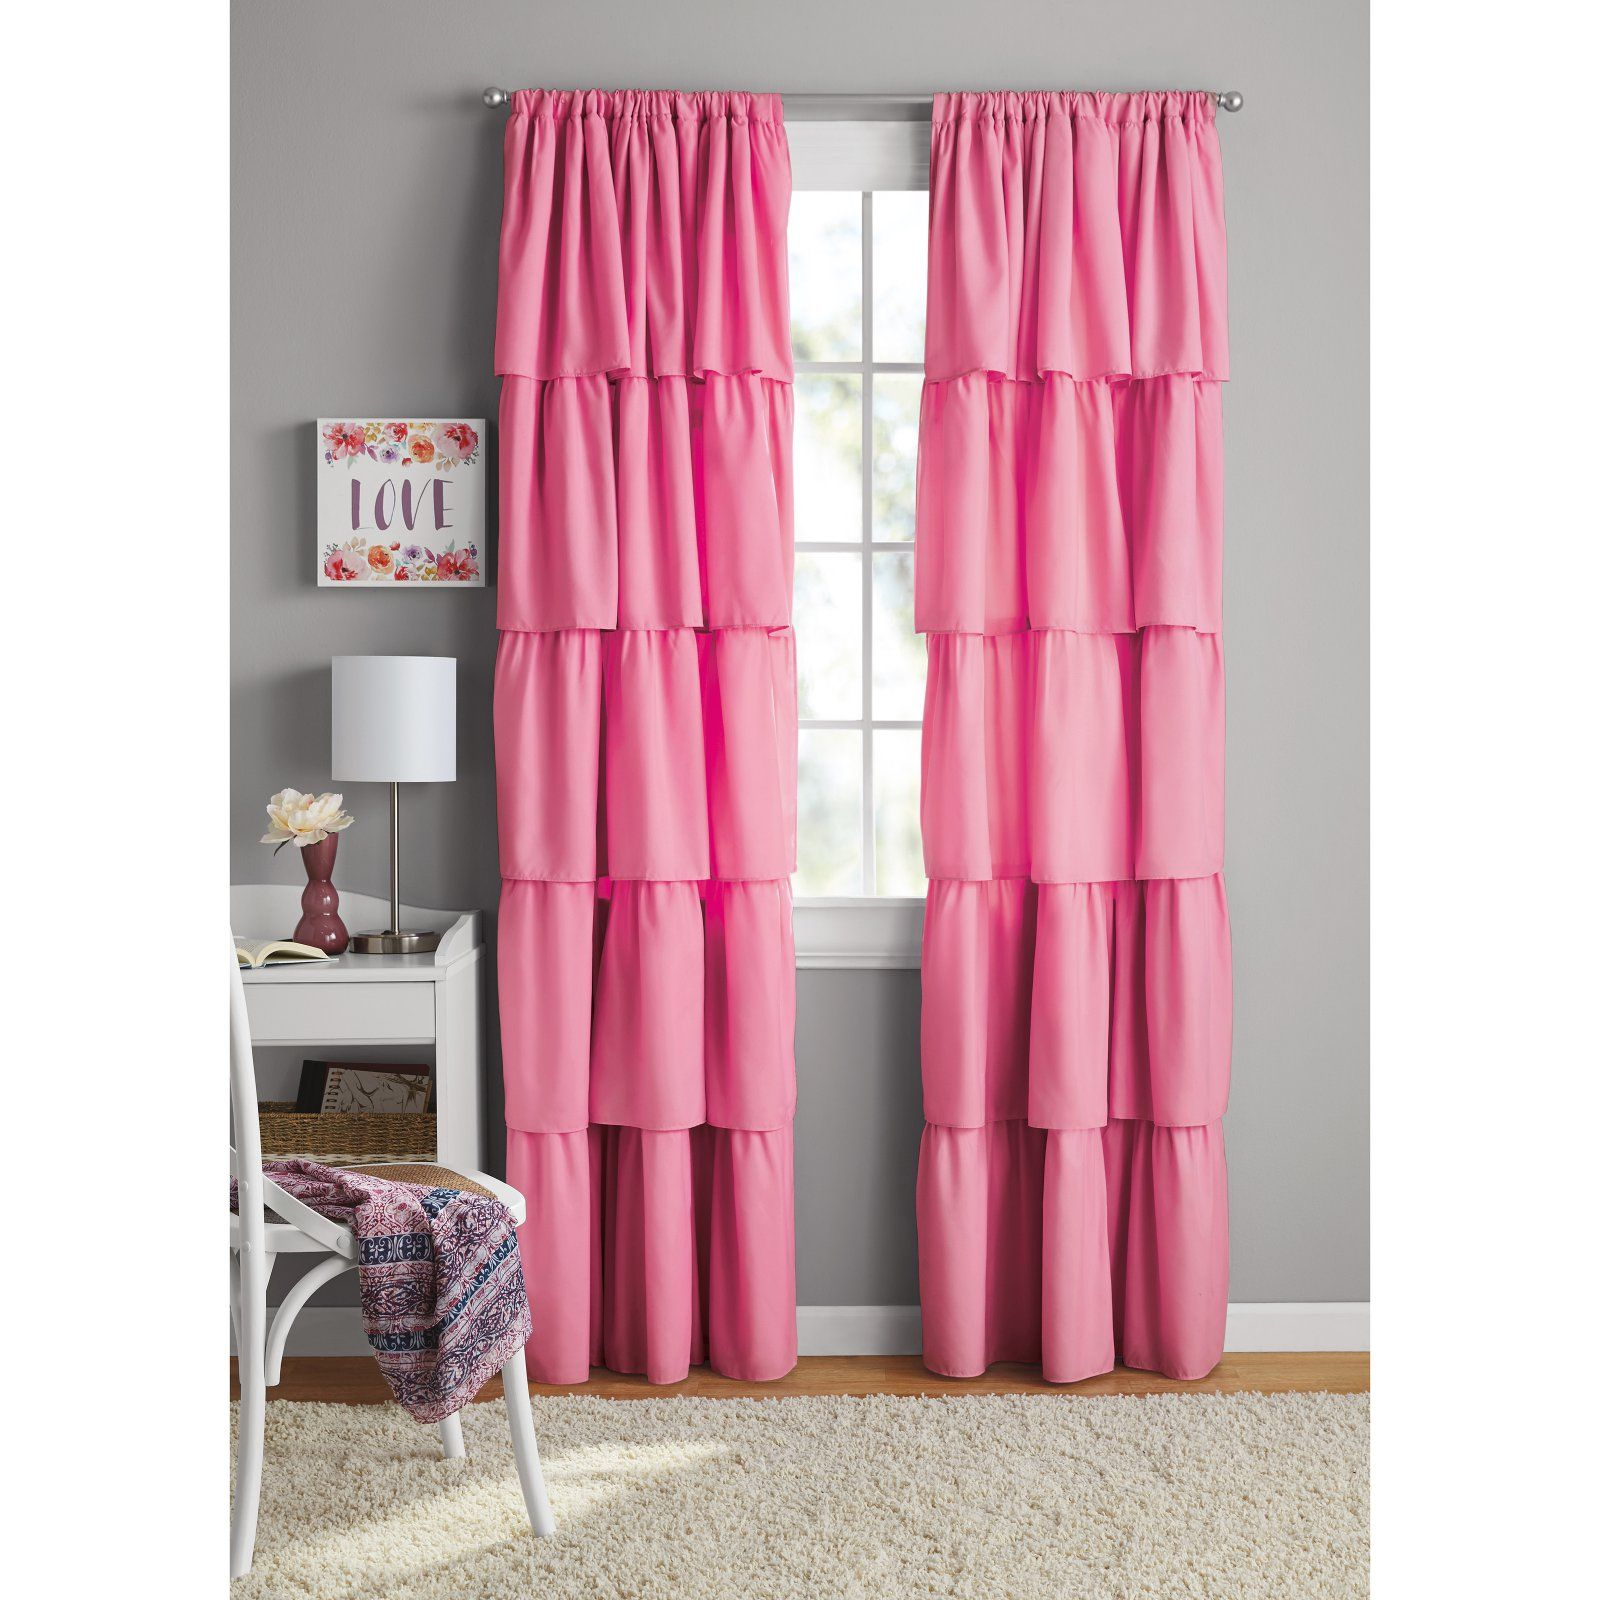 Your Zone Ruffle Girls Bedroom Curtain Berry | Products in ...